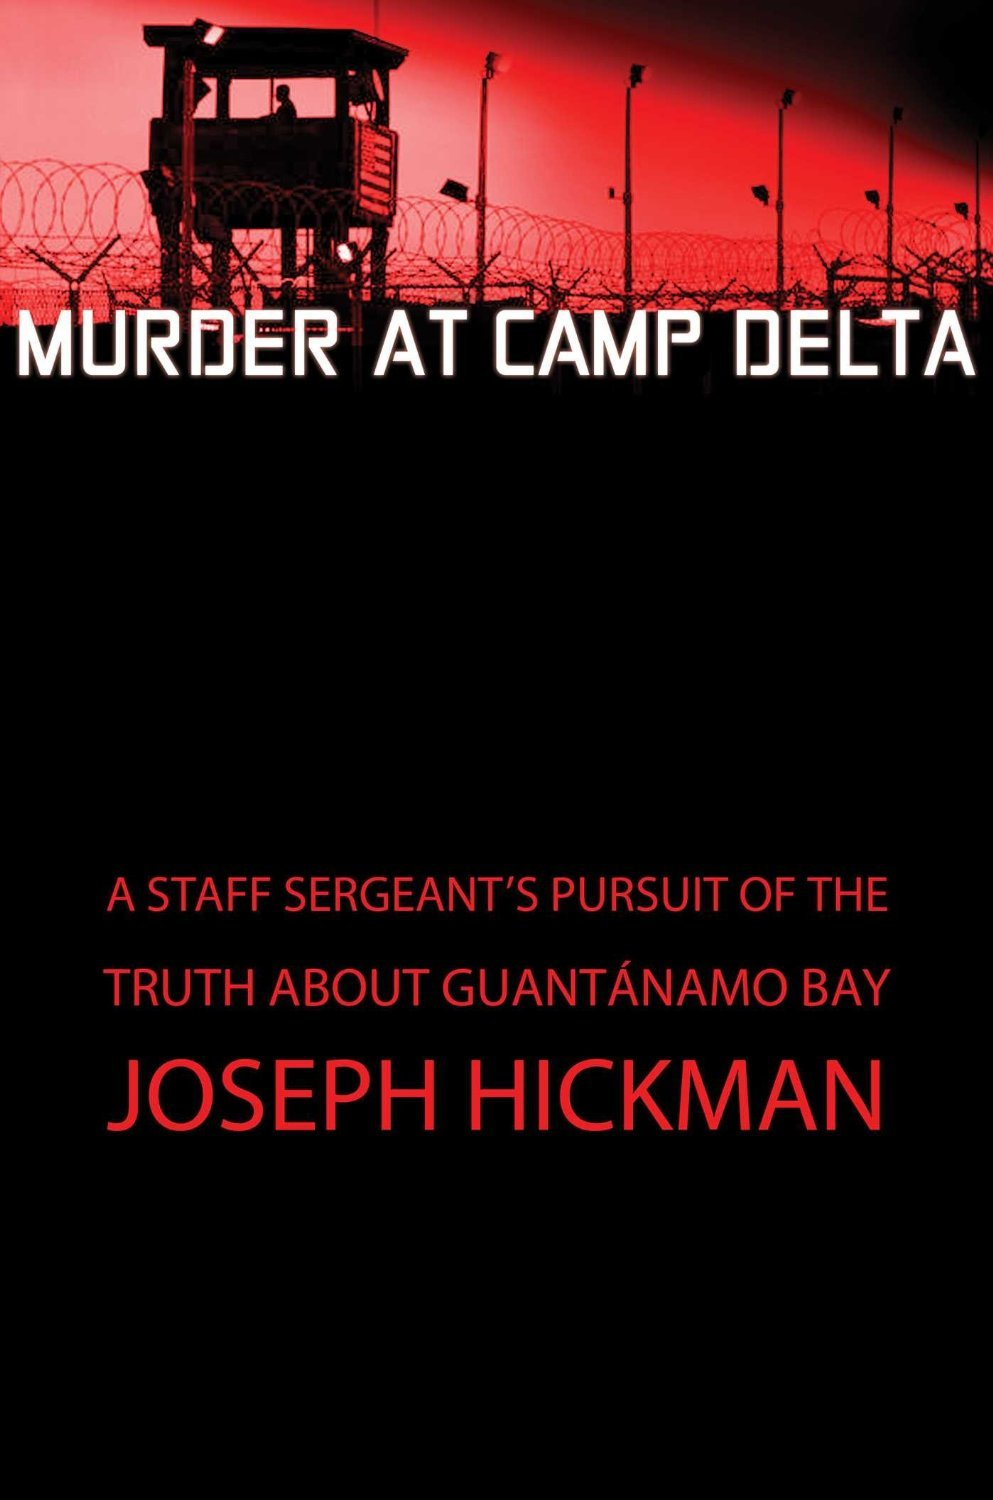 Murder at Camp Delta: A Staff Sergeants Pursuit of the Truth About Guantanamo Bay Joseph Hickman